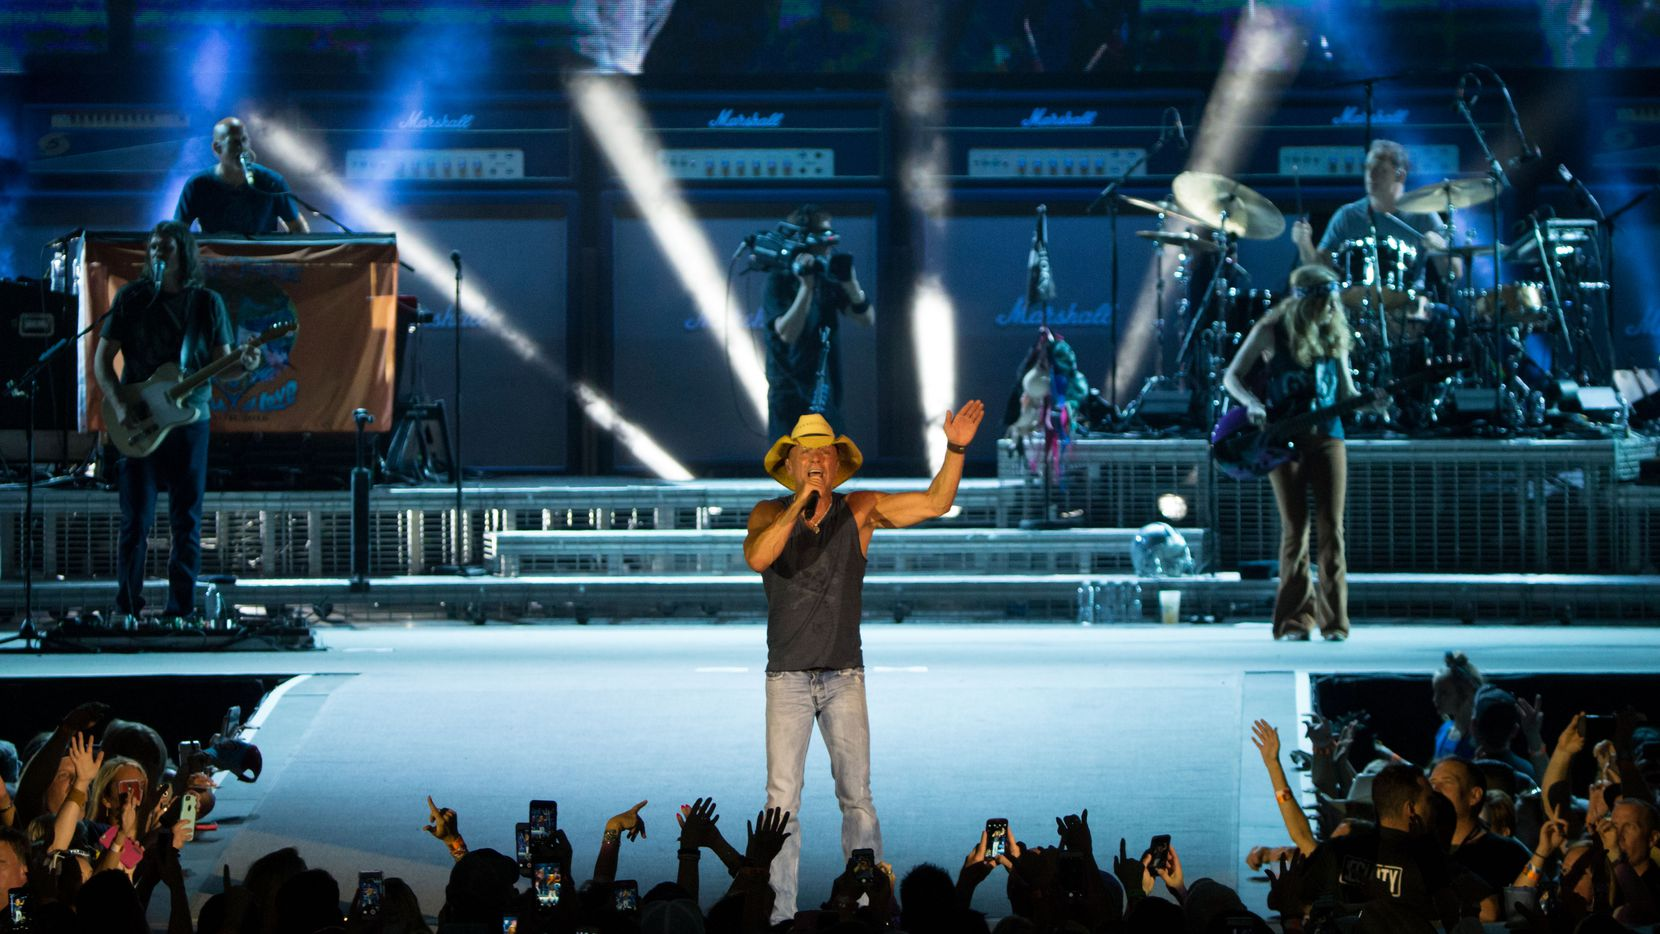 Kenny Chesney performs on stage during the his Spread the Love Tour concert at AT&T Stadium on June 4, 2016 in Arlington.